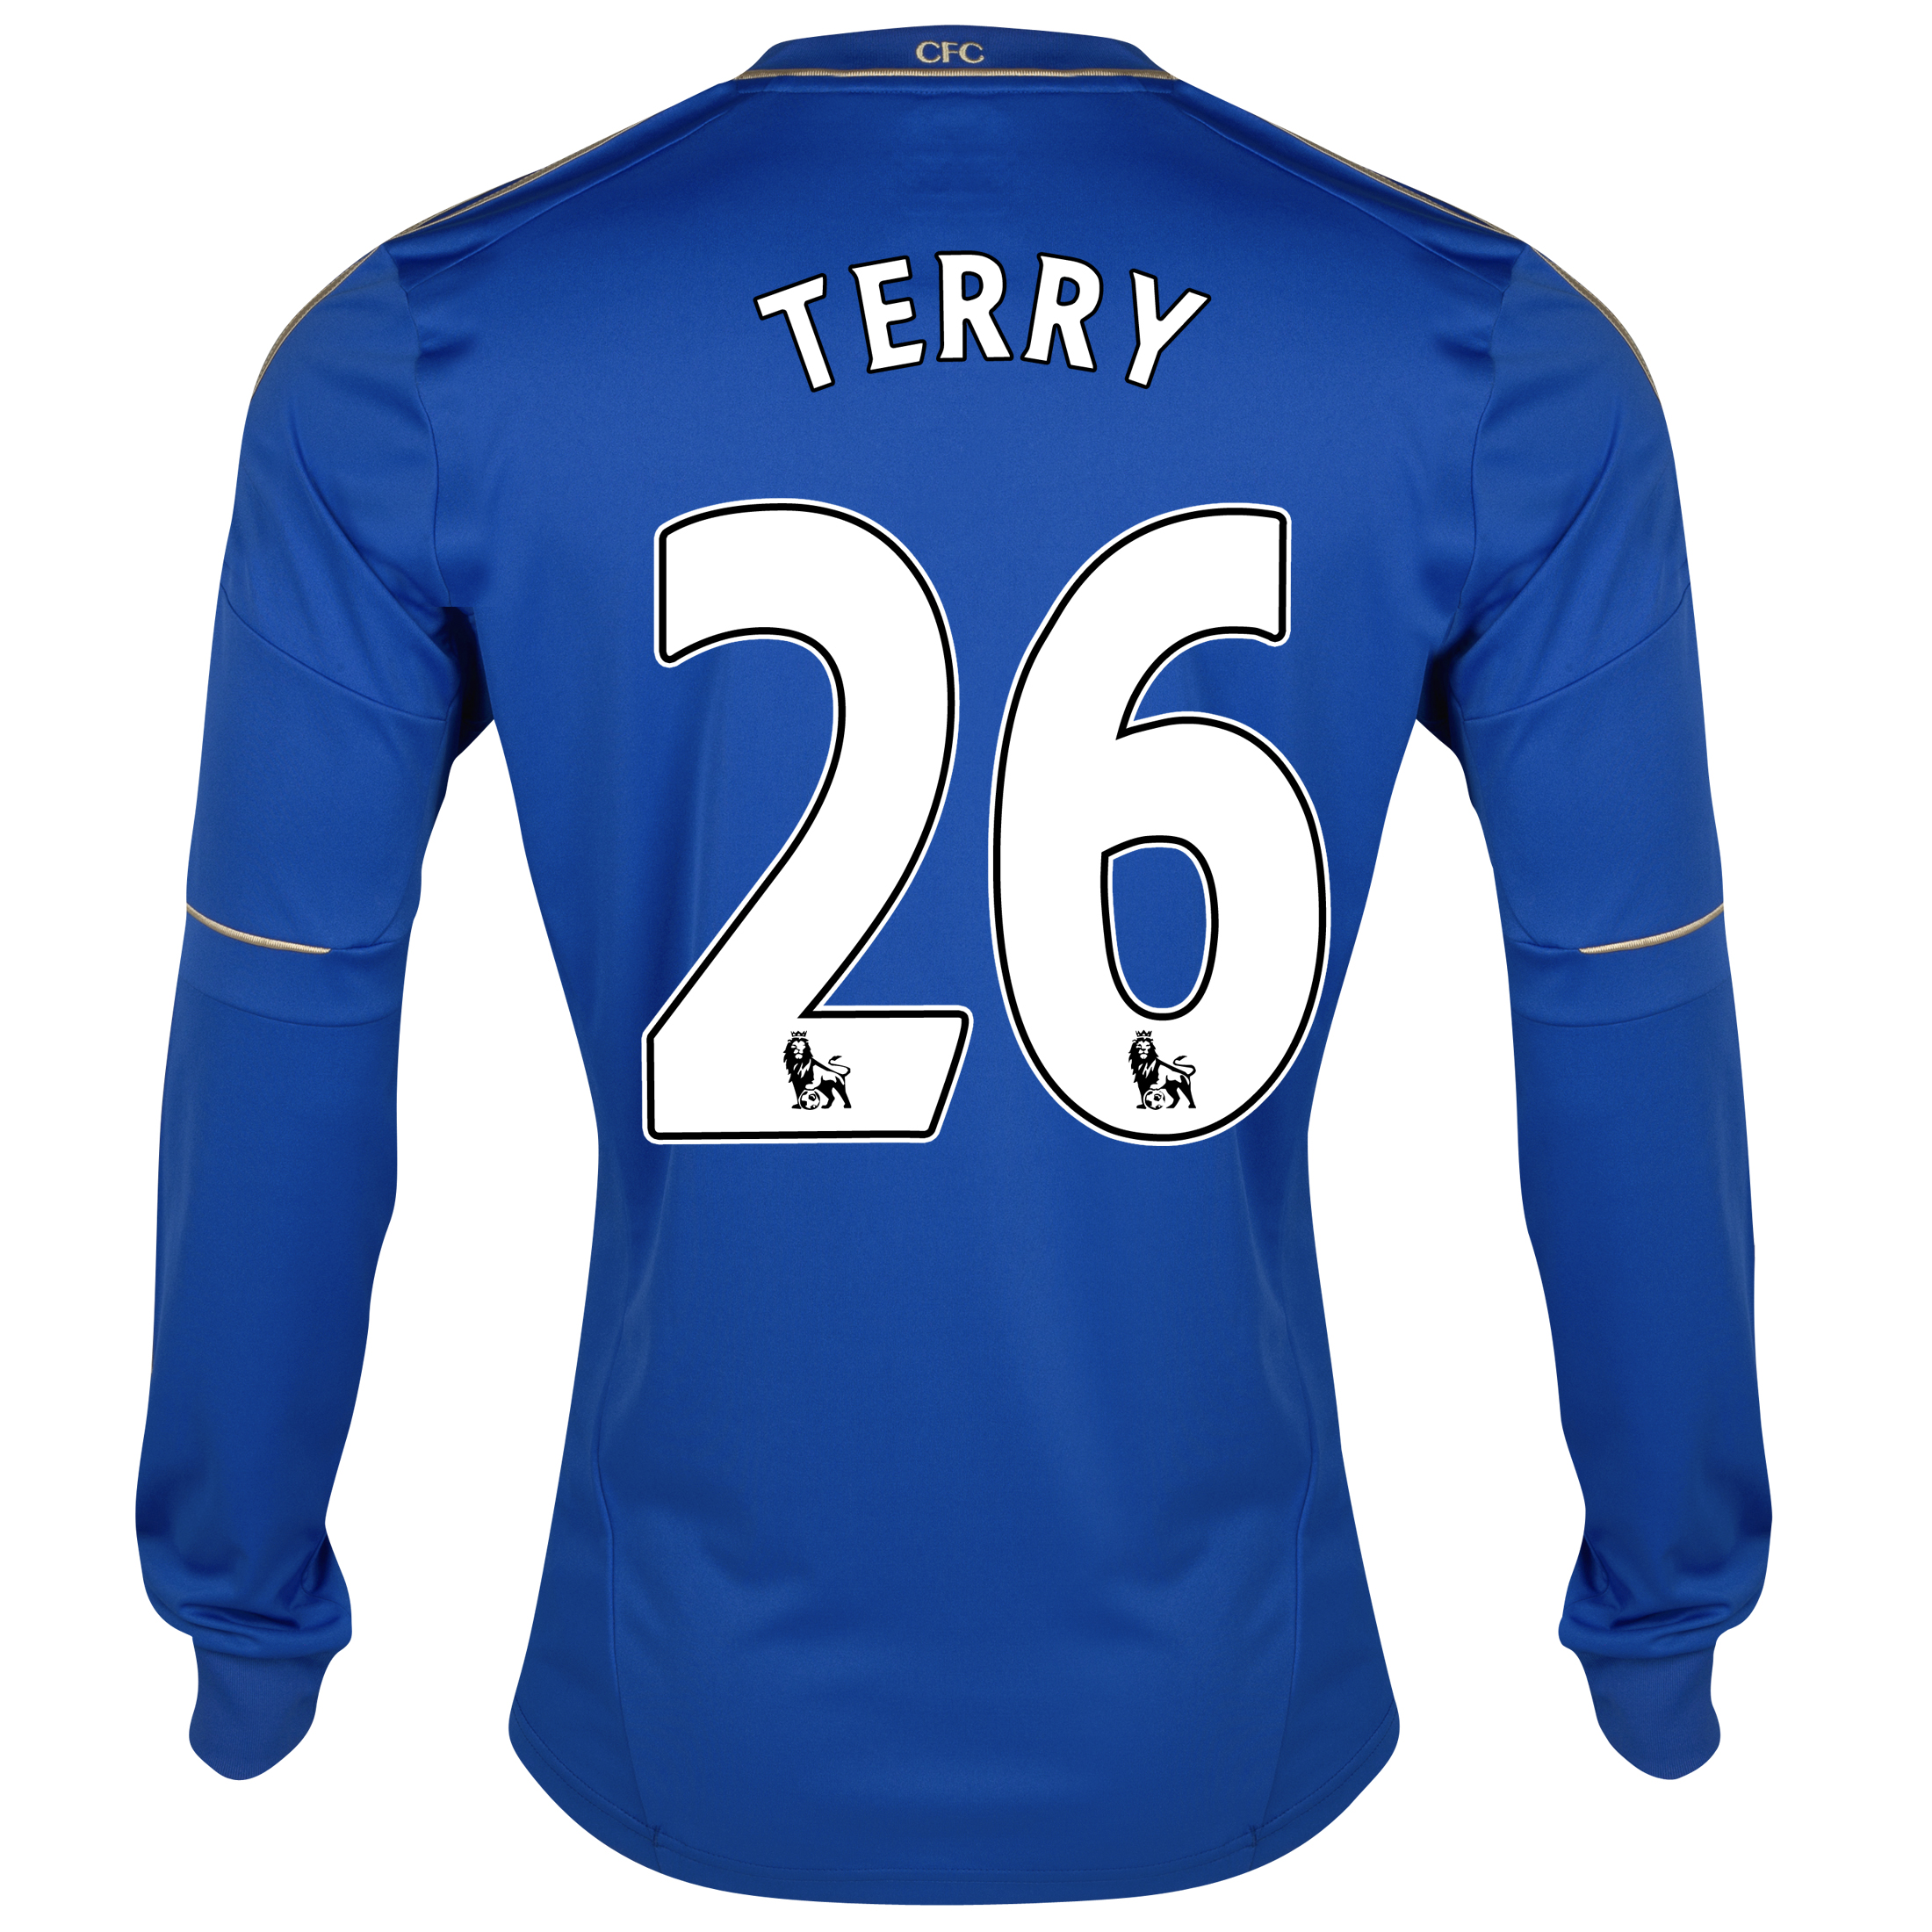 Chelsea Home Shirt 2012/13 - Long Sleeved - Youths with Terry 26 printing